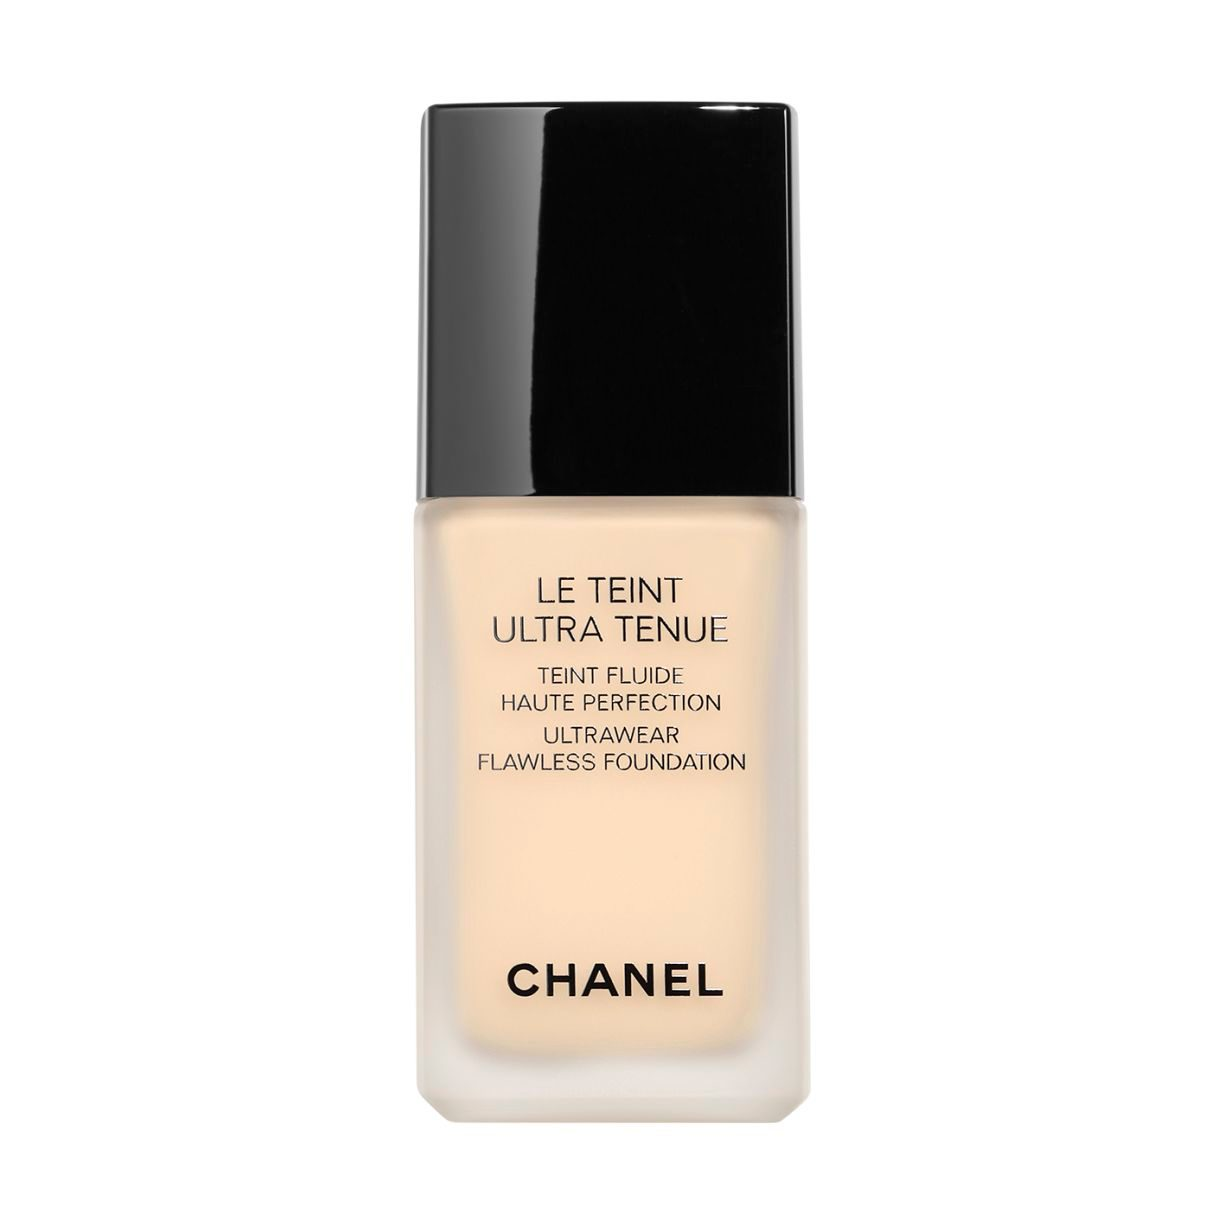 LE TEINT ULTRA TENUE ULTRAWEAR FLAWLESS FOUNDATION 21 - BEIGE